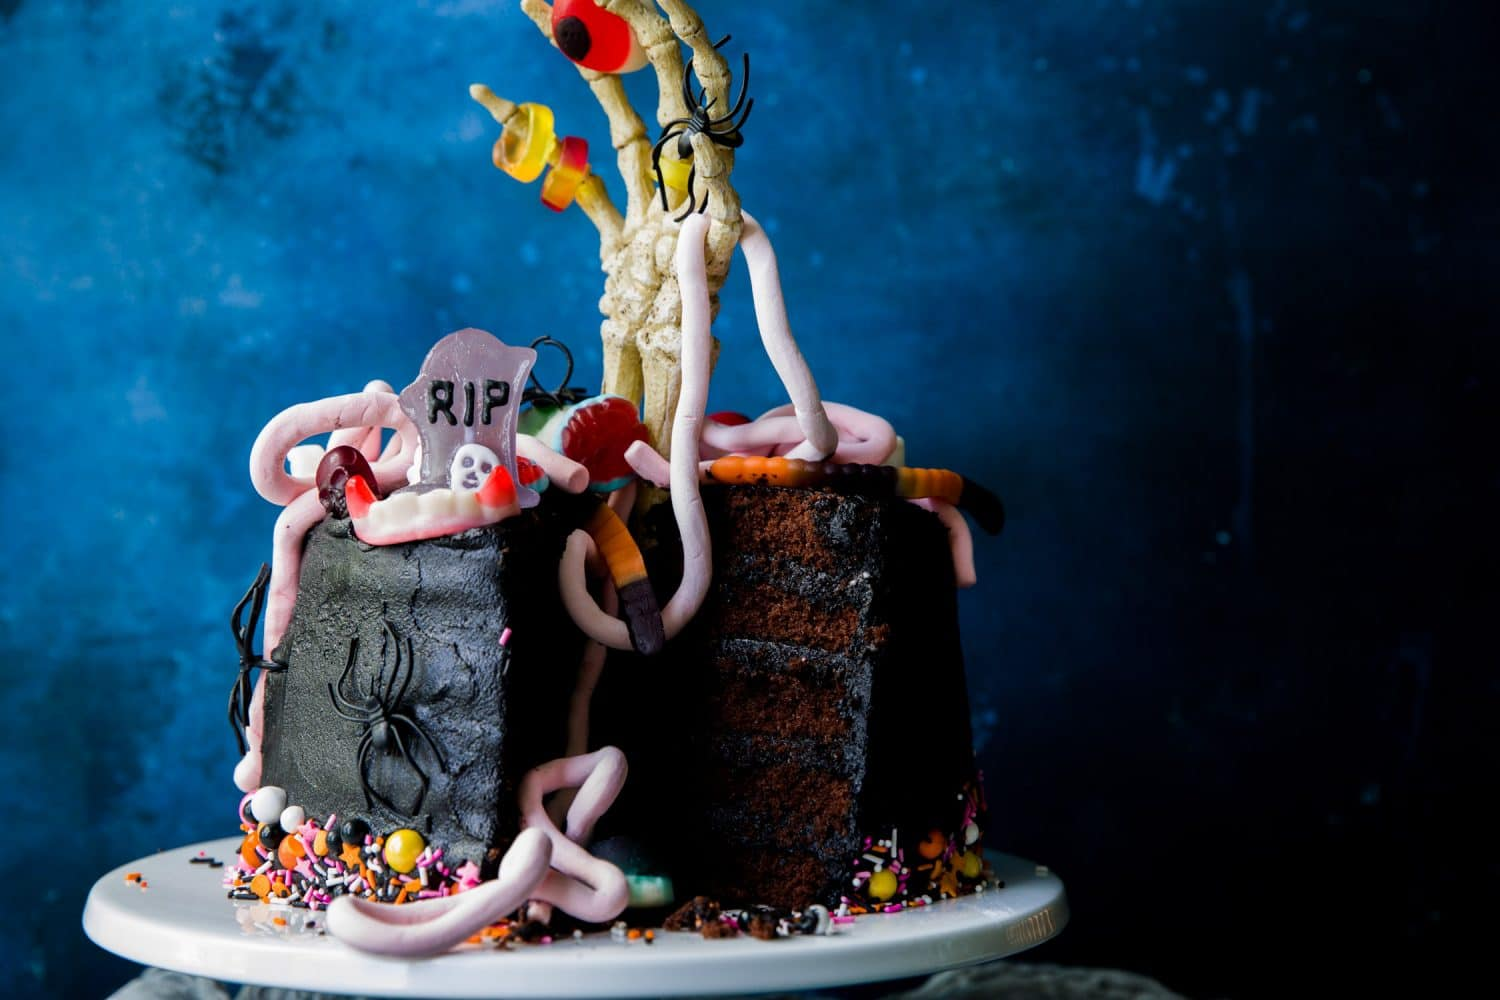 A black Halloween cake that has been cut open to reveal the 5 layers. The cake is topped with a skeleton hand and Halloween sweets.